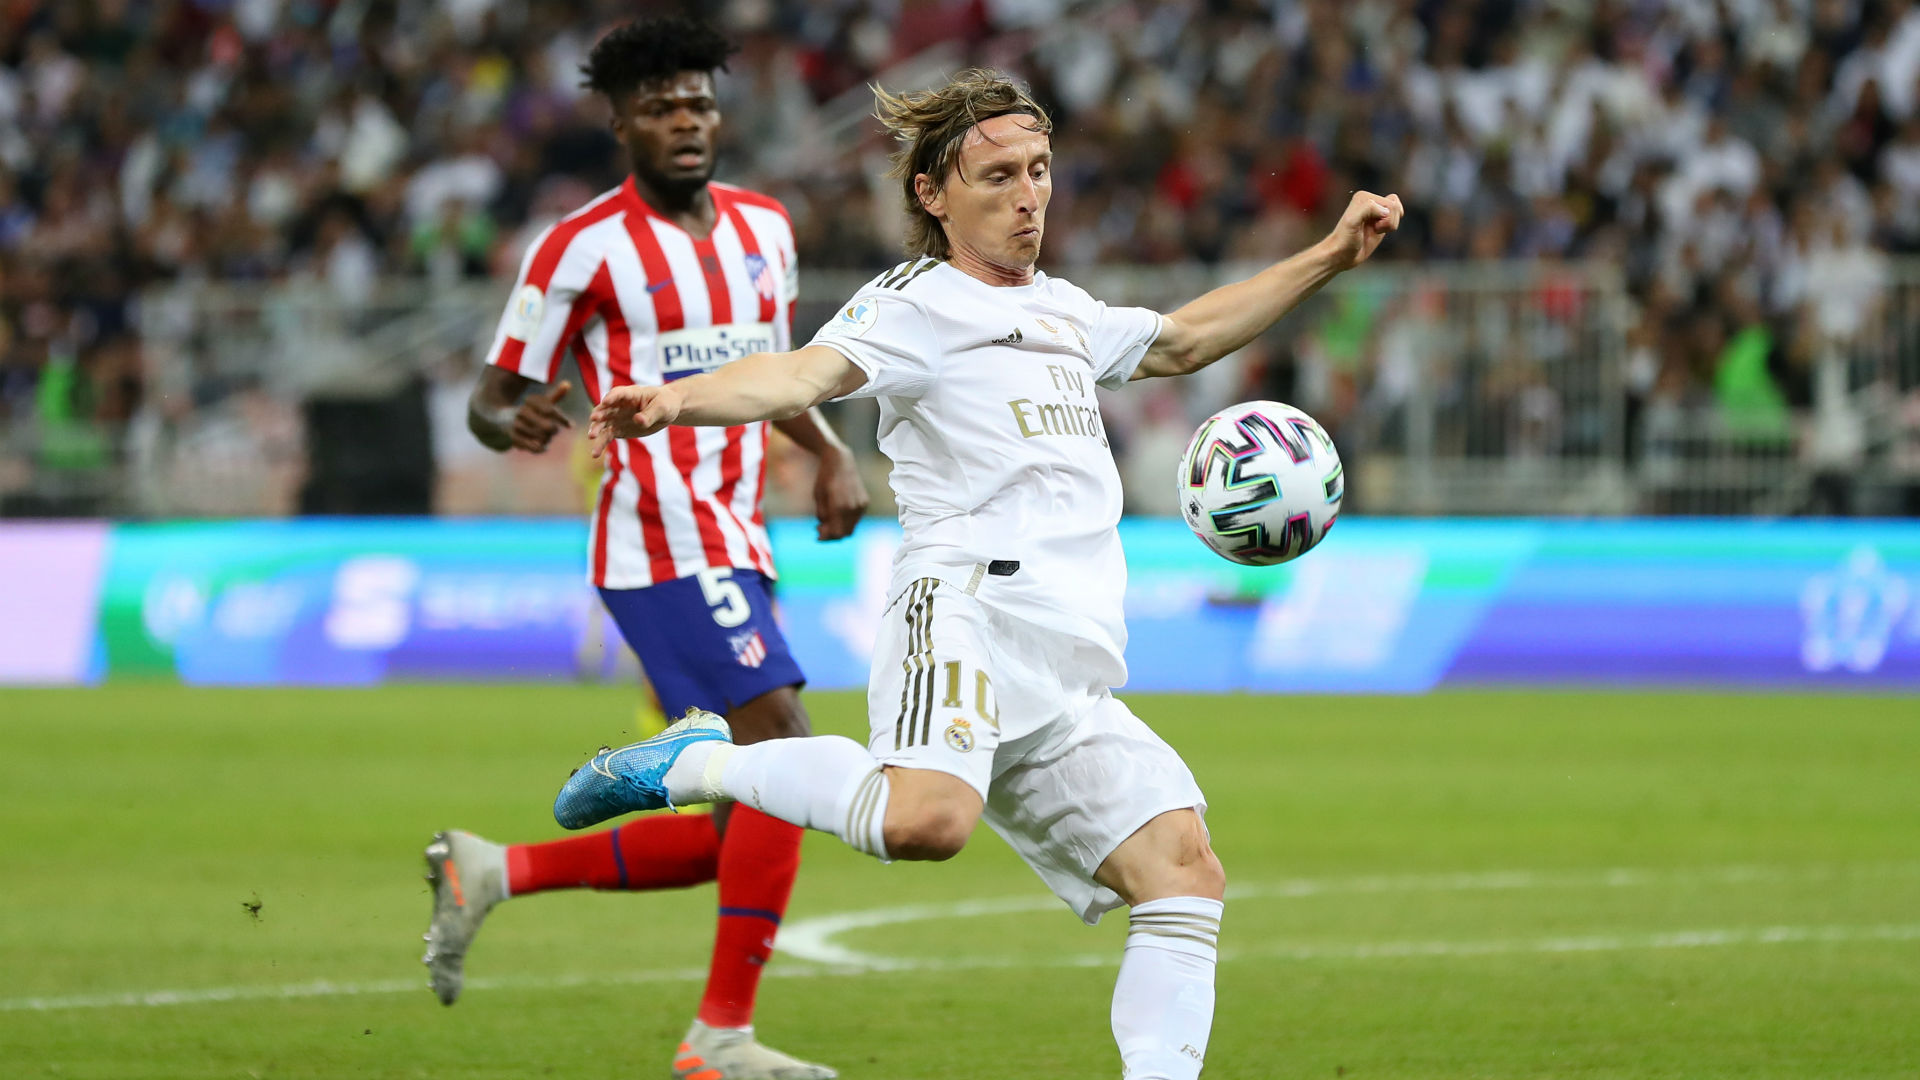 Thomas Partey's penalty miss gifts Real Madrid Spanish Super Cup